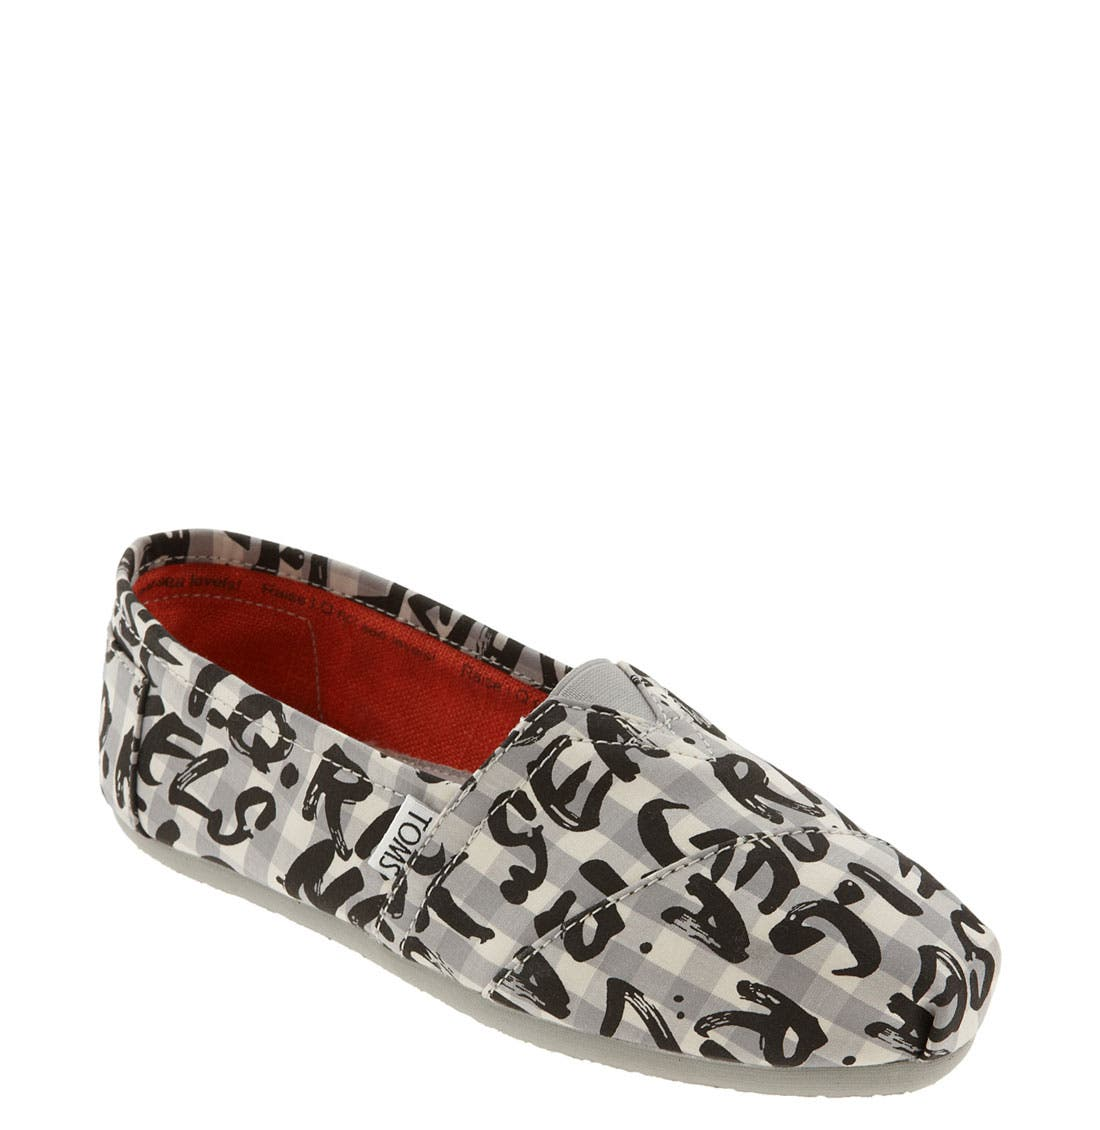 TOMS 'Dare to Teach' Slip-On, Main, color, 001